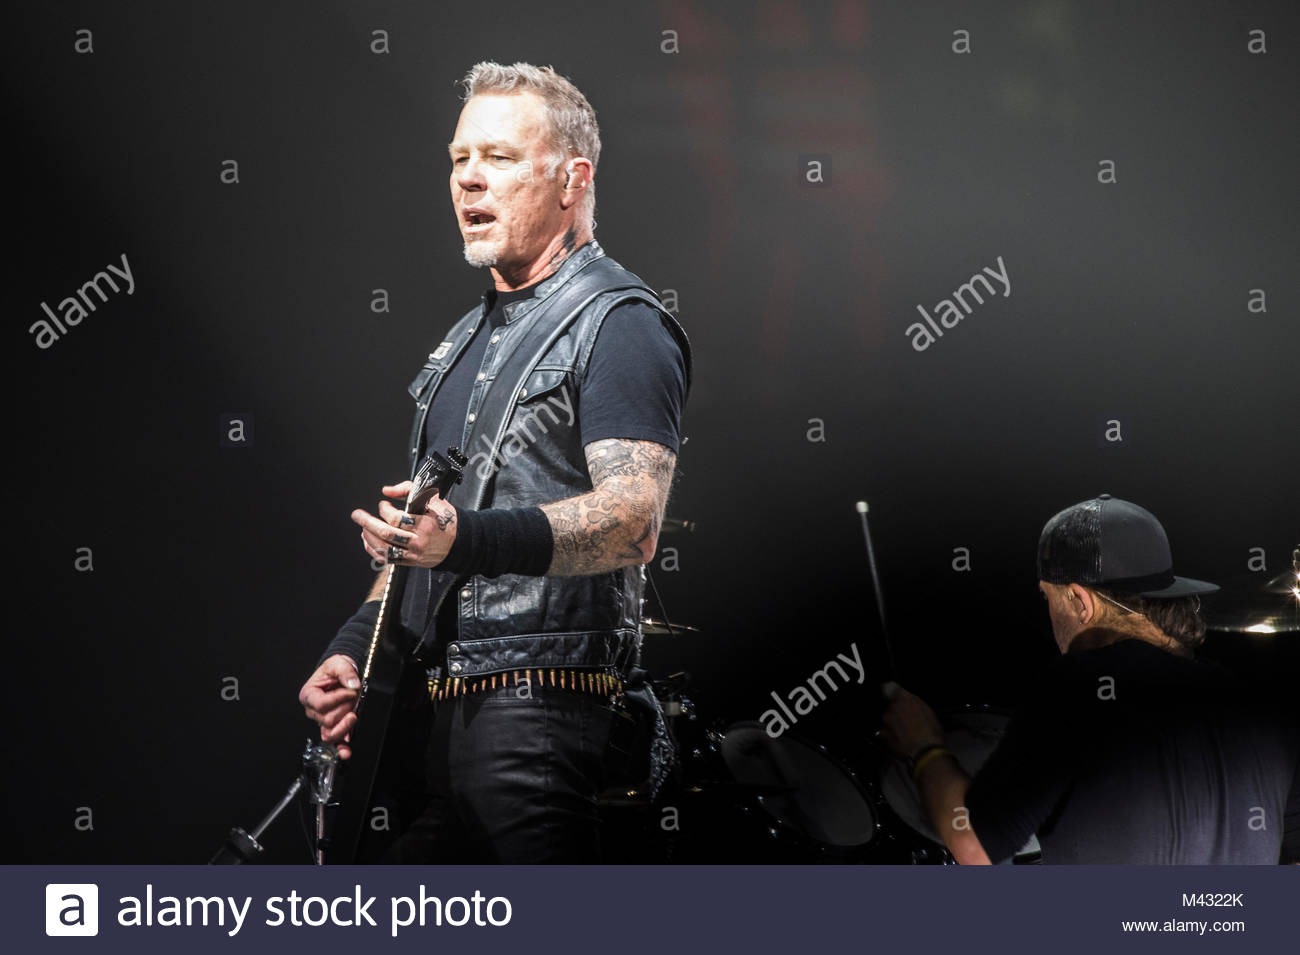 American band Metallica performs live on stage at Unipol Arena in Bologna on February 12, 2018 - Stock Image